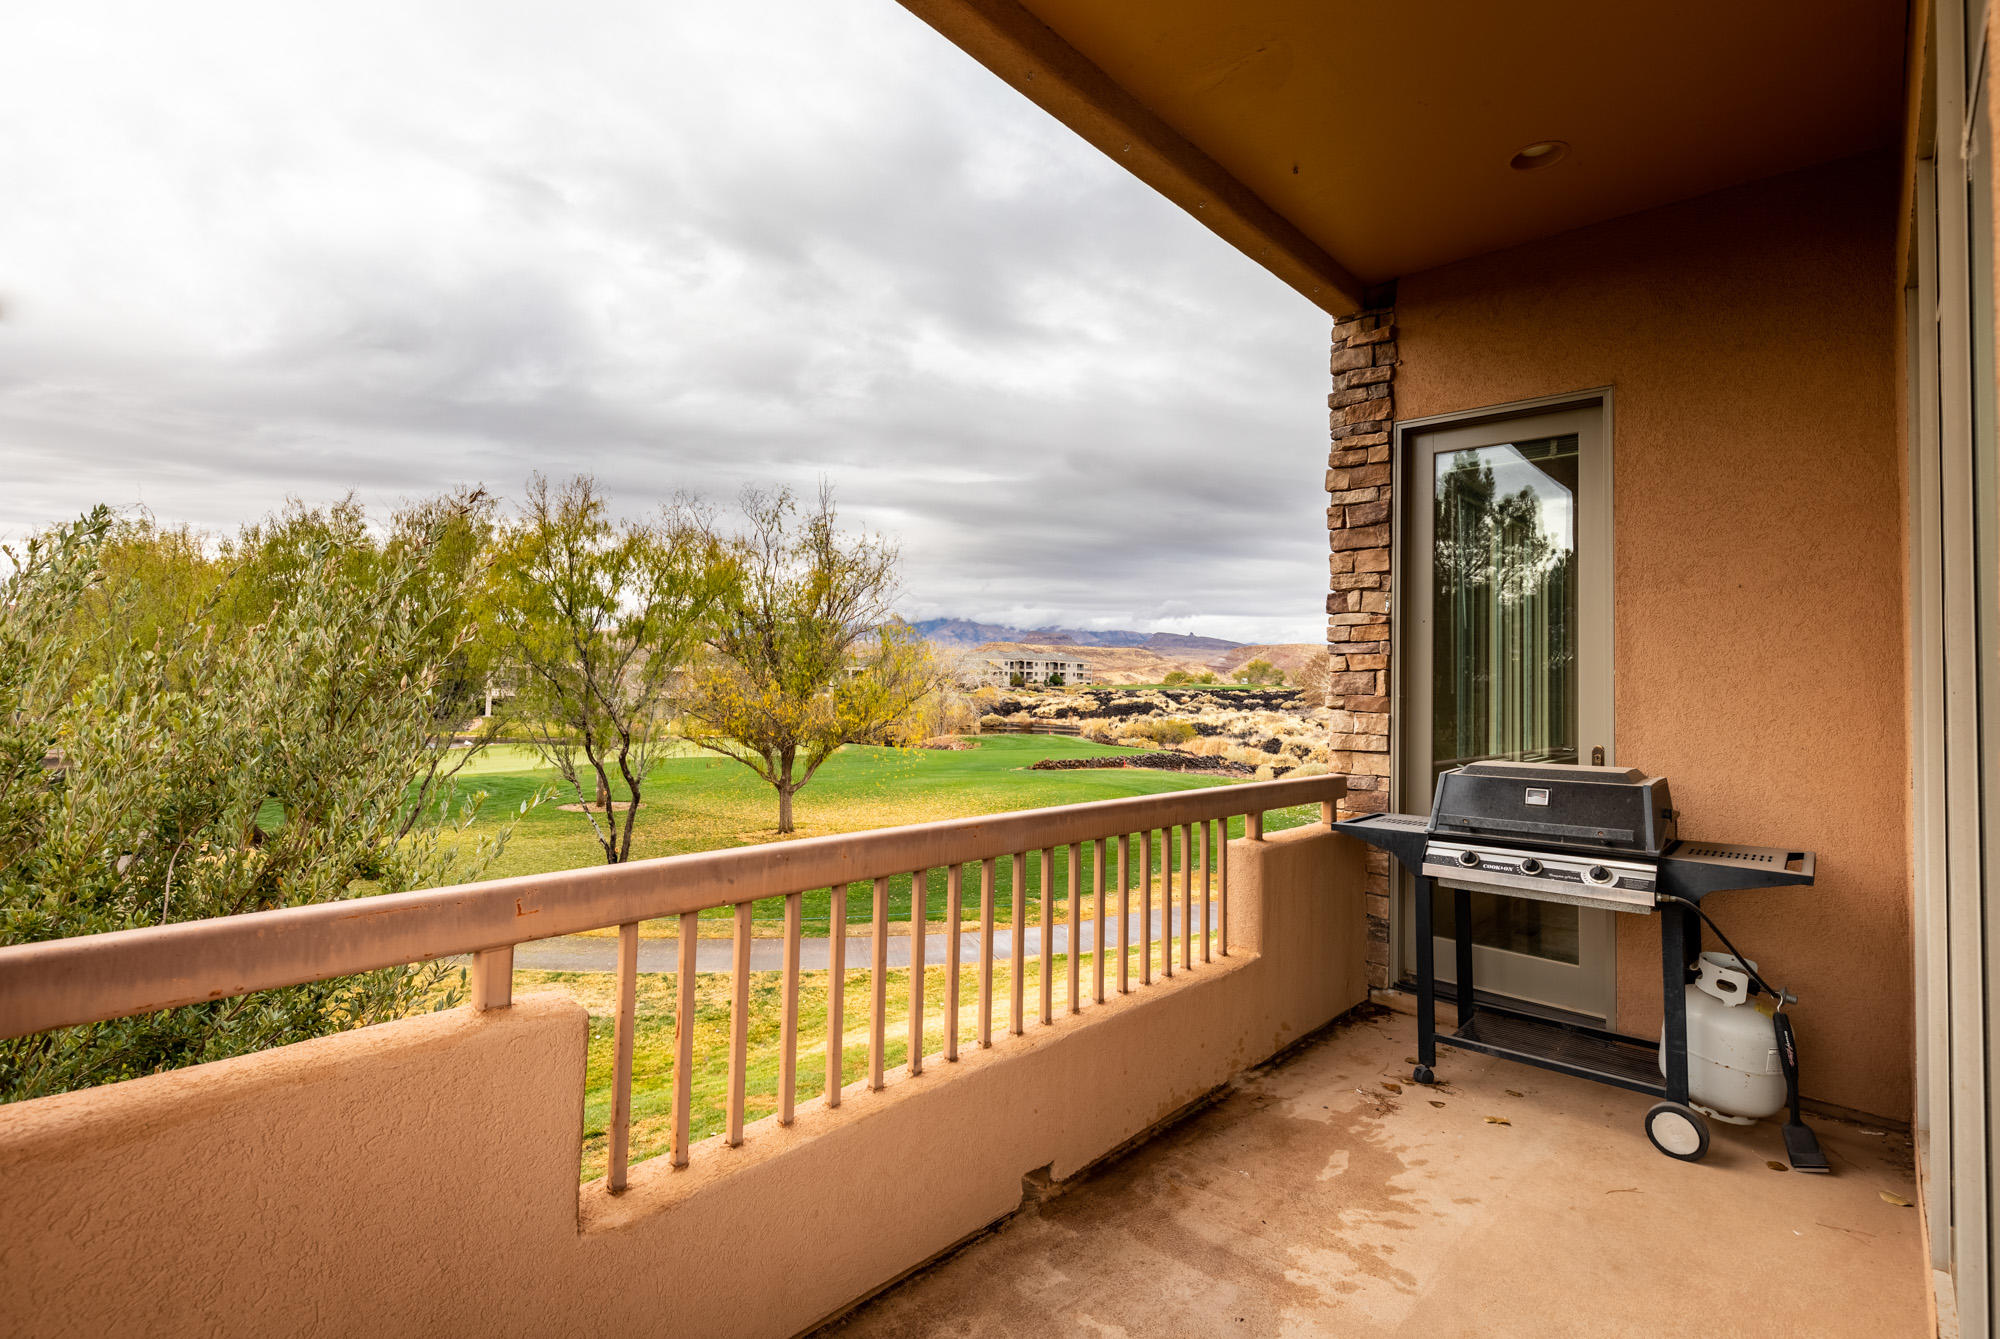 271 N Country Ln Unit A5, St George Ut 84770